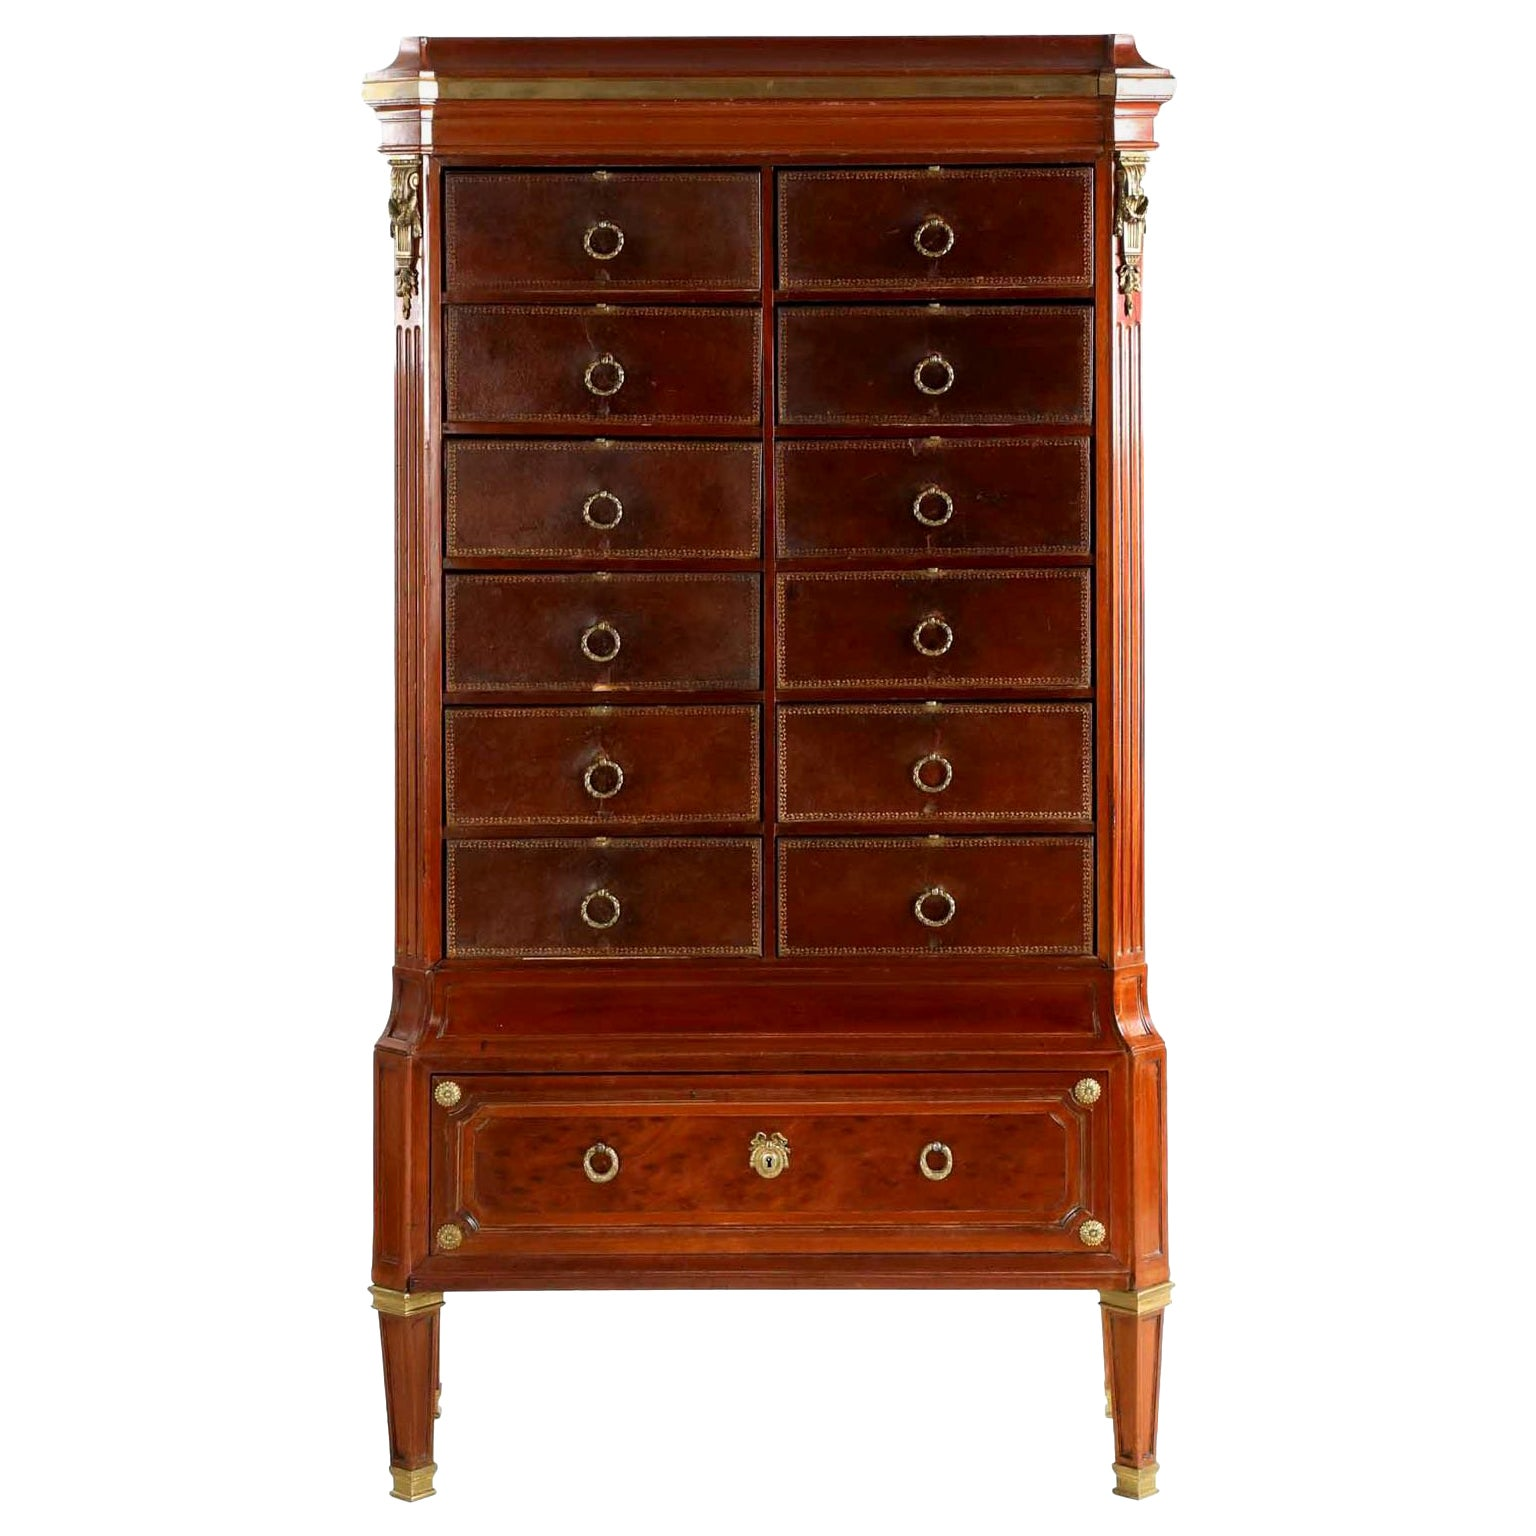 French Neoclassical Mahogany and Leather Antique Chest of Drawers Cartonnier